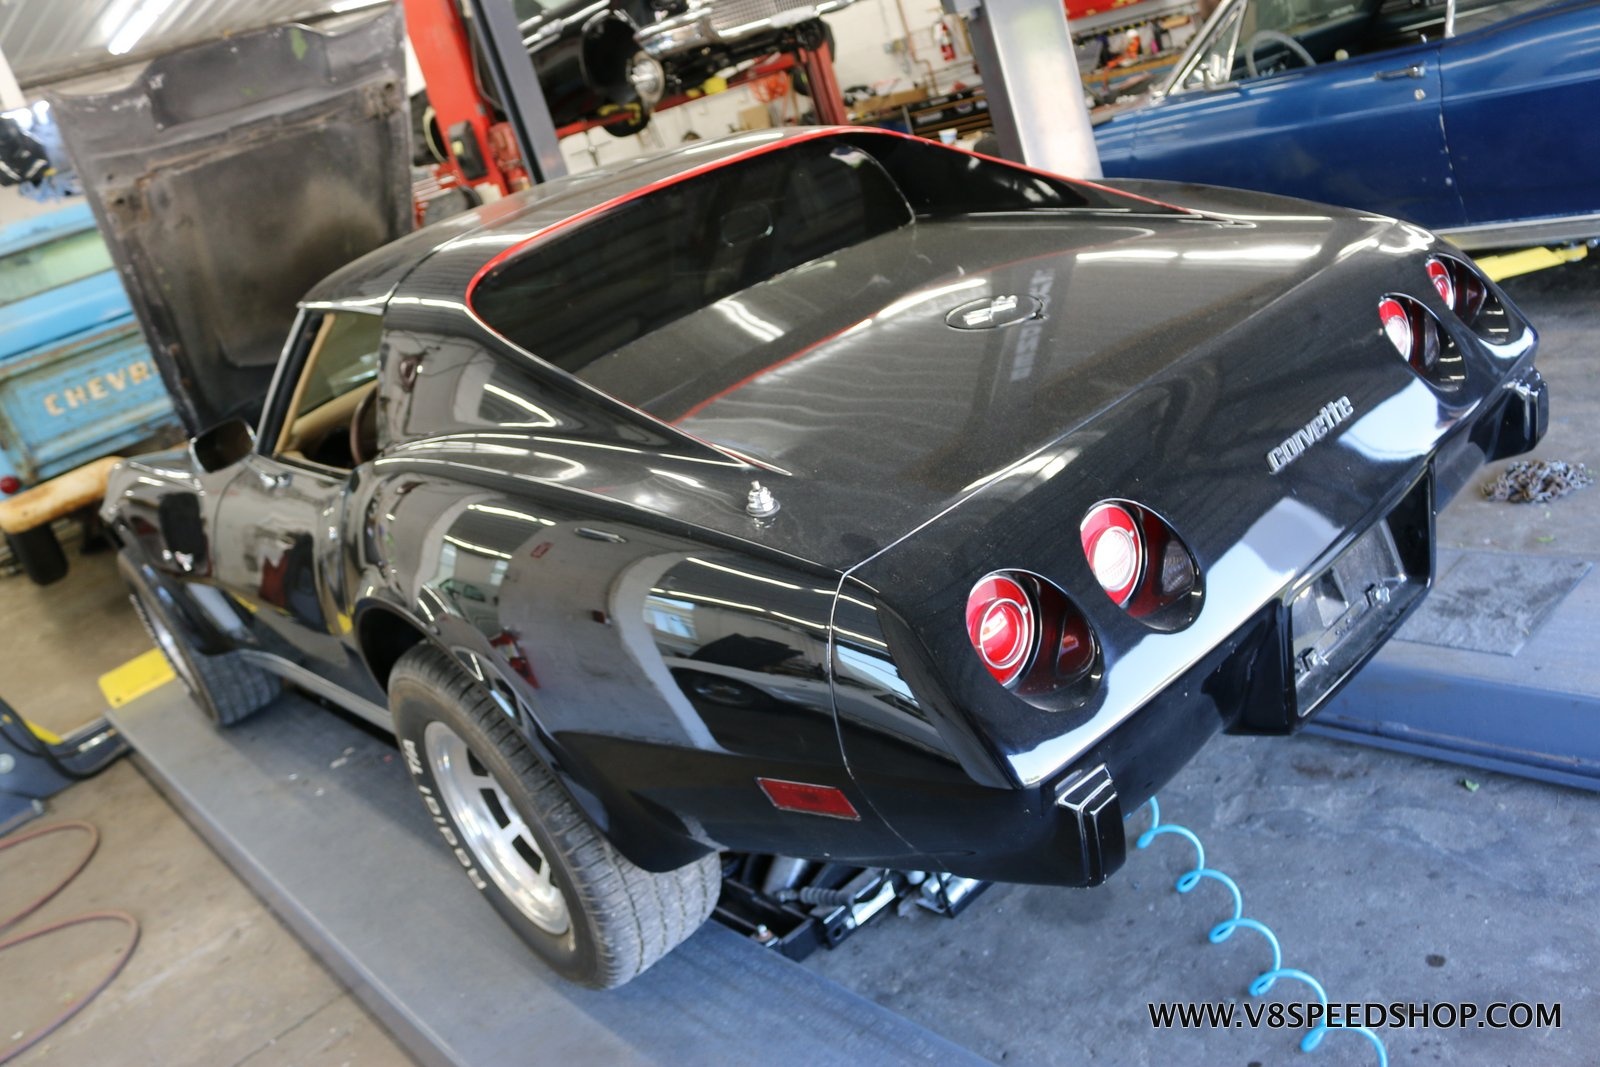 1976 Chevrolet Corvette Upgrades at V8 Speed & Resto Shop